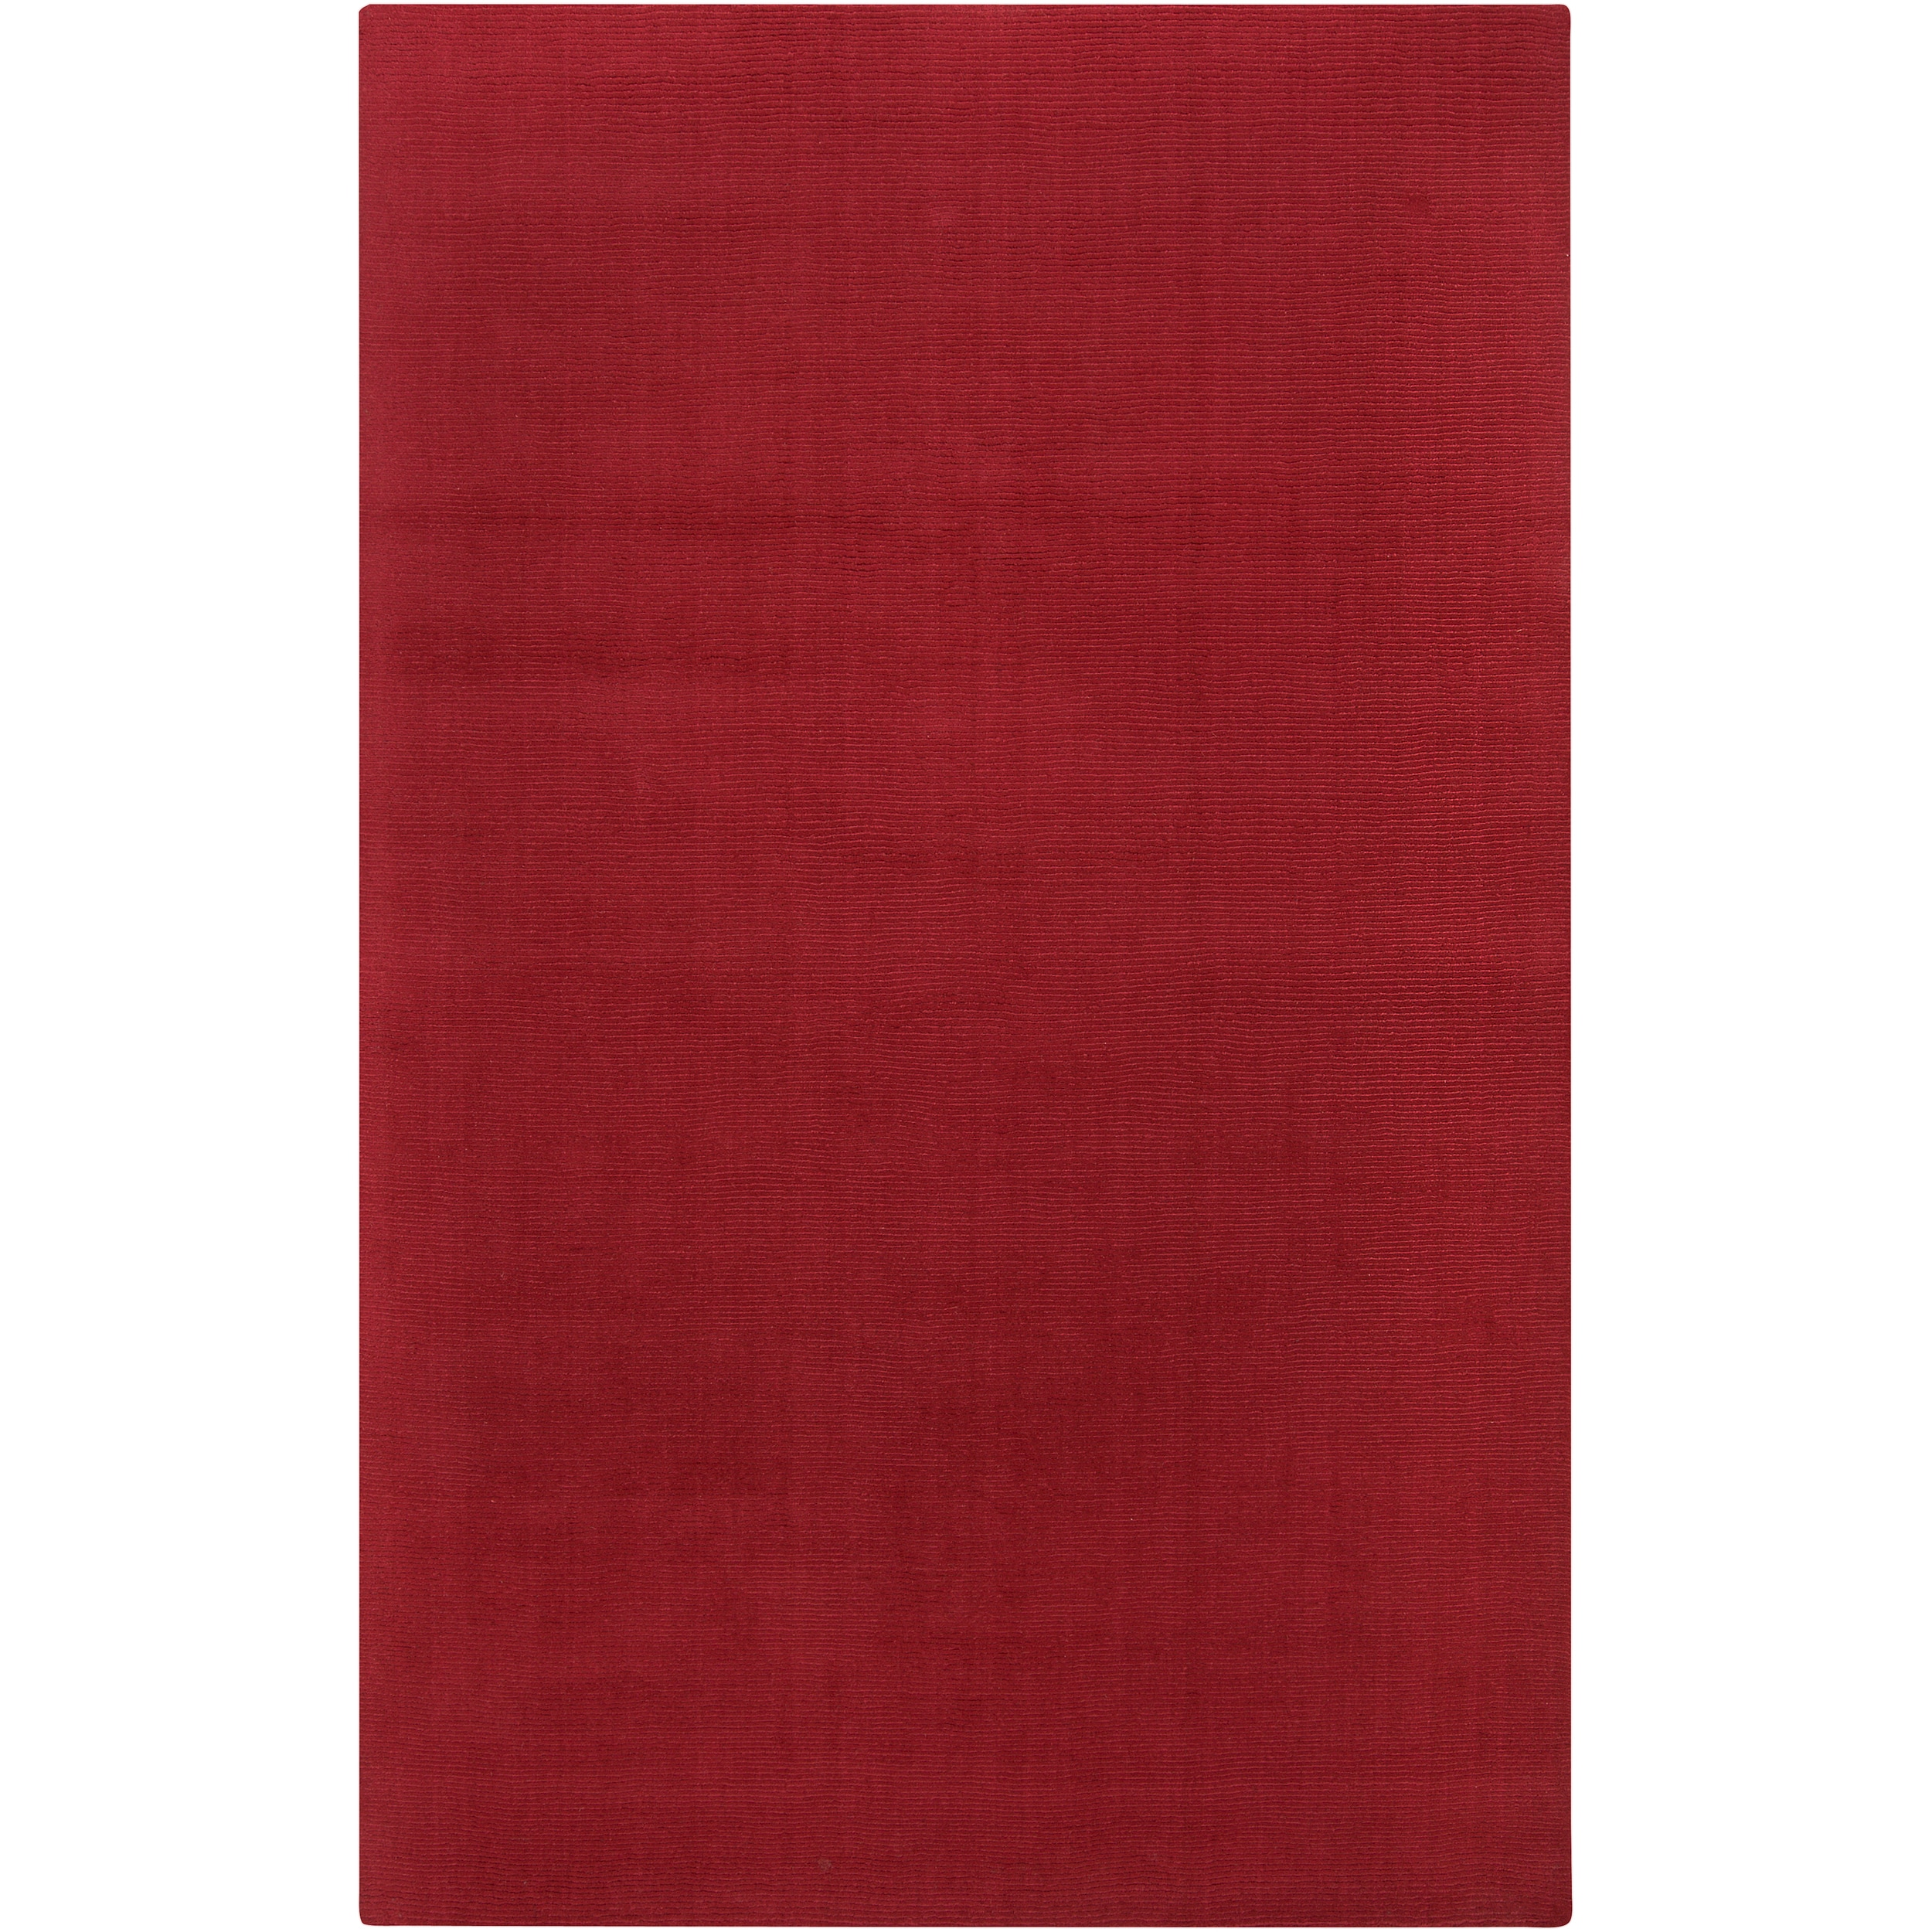 Hand-crafted Red Solid Casual Vaga Wool Area Rug (9' x 13')